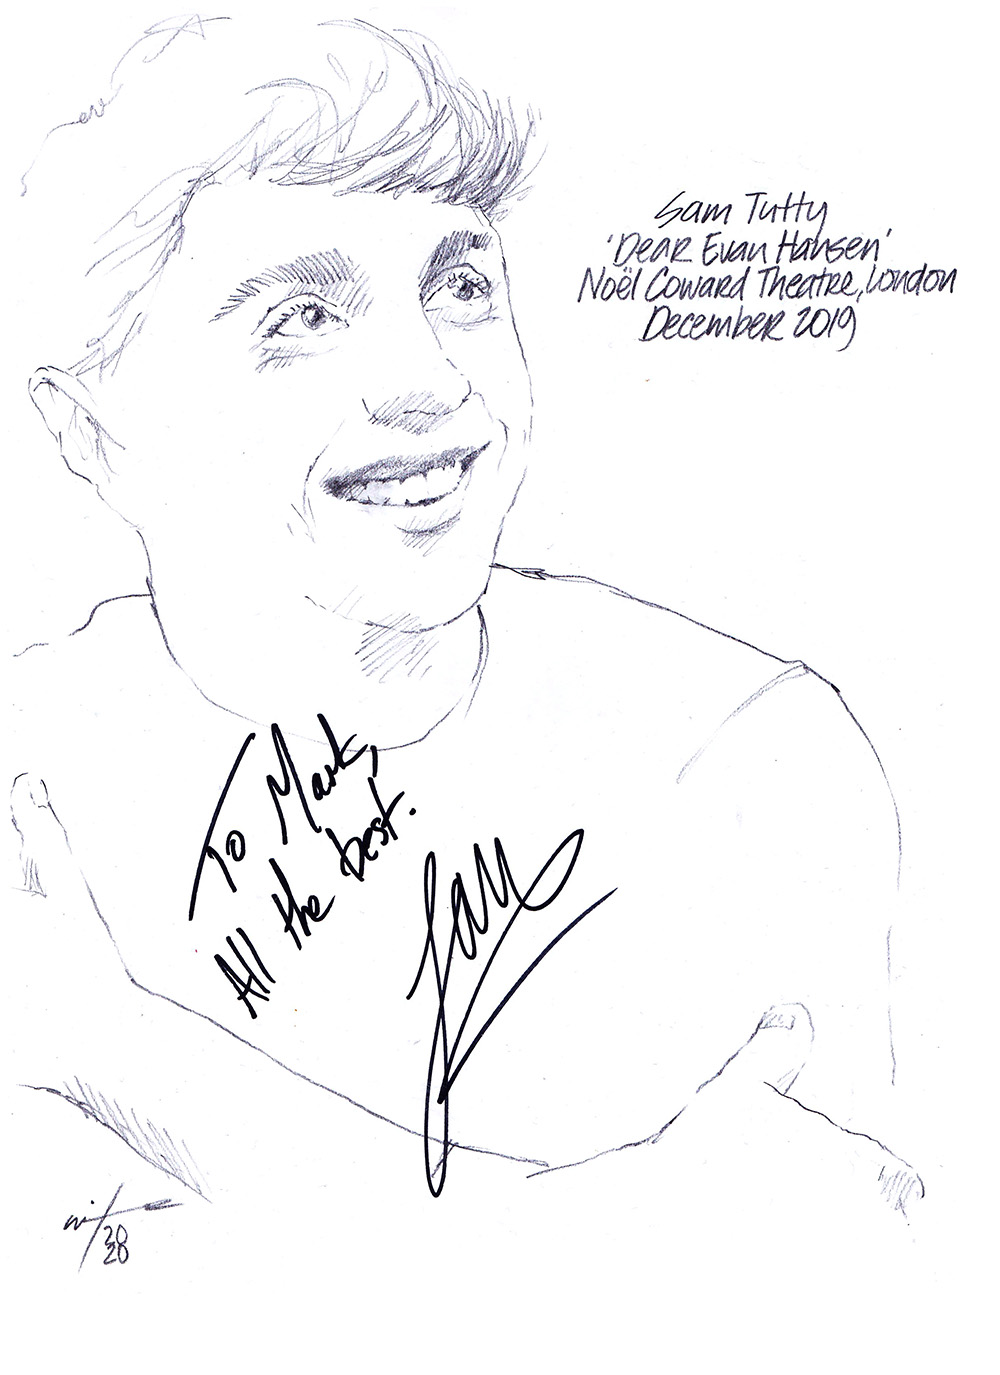 Autographed drawing of Sam Tutty in Dear Evan Hansen at the Noel Coward Theatre on London's West End